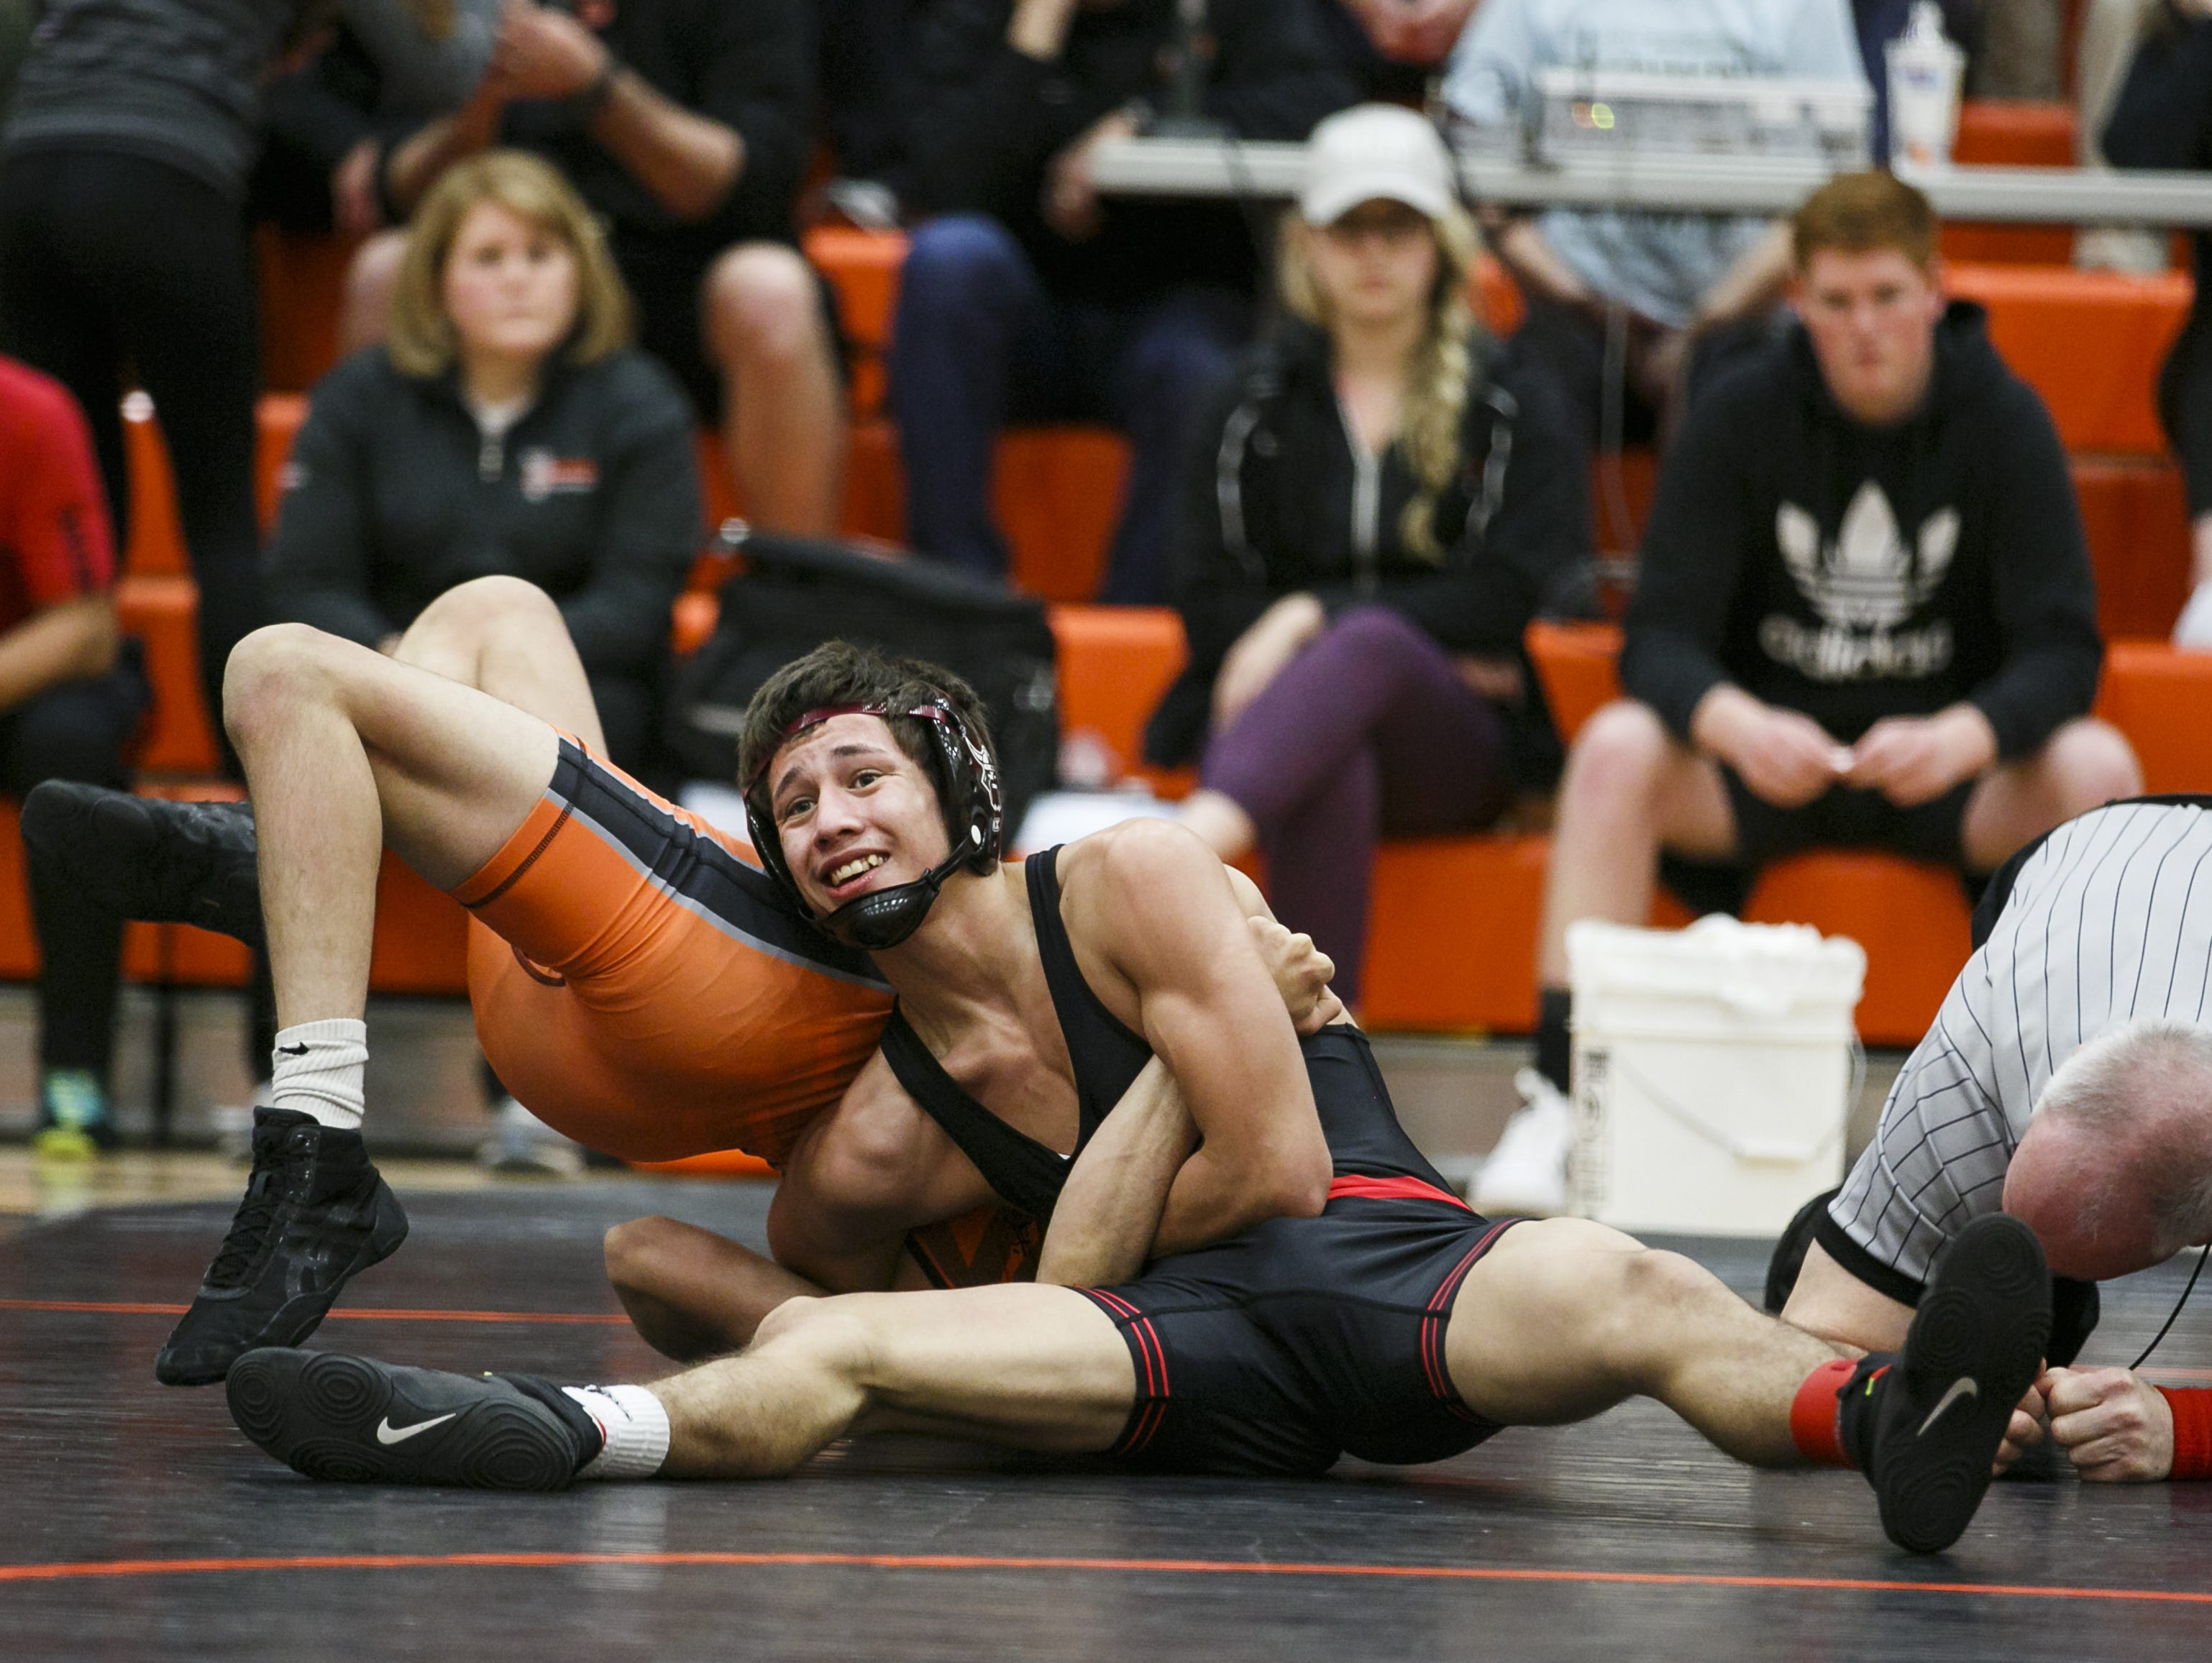 North Salem's Brandon Quezada was among five Viking wrestlers who qualified for the state wrestling championships this weekend.